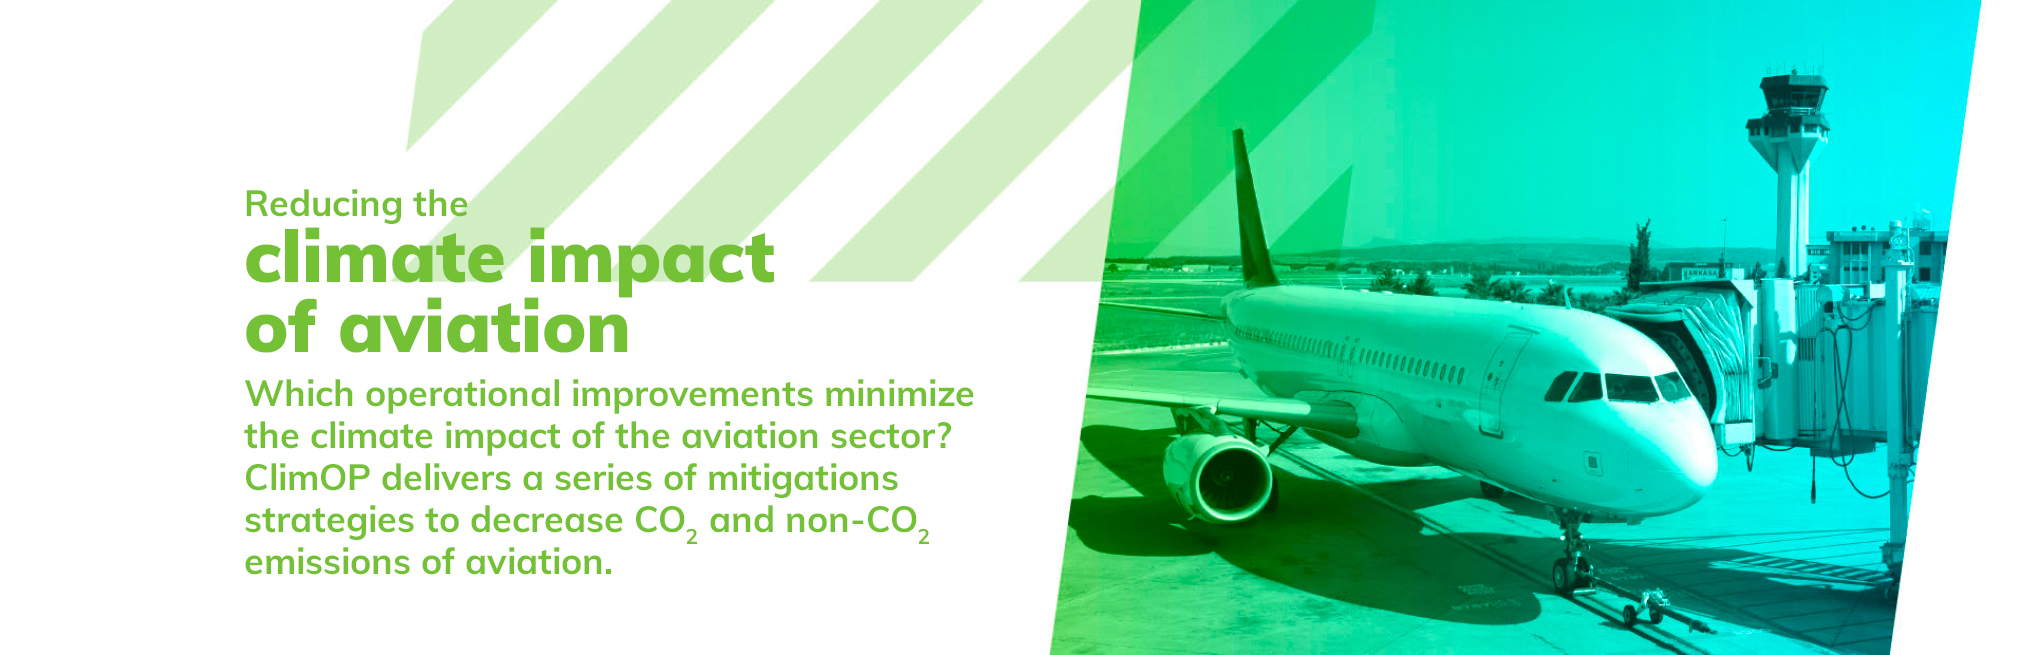 Reducing the climate impact of aviation. Which operational improvement can minimize the climate impact of the aviation sector? ClimOP delivers a series of mitigations strategies to decrease CO2 and non-CO2 emissions of aviation. For a greener aviation, against climate change.